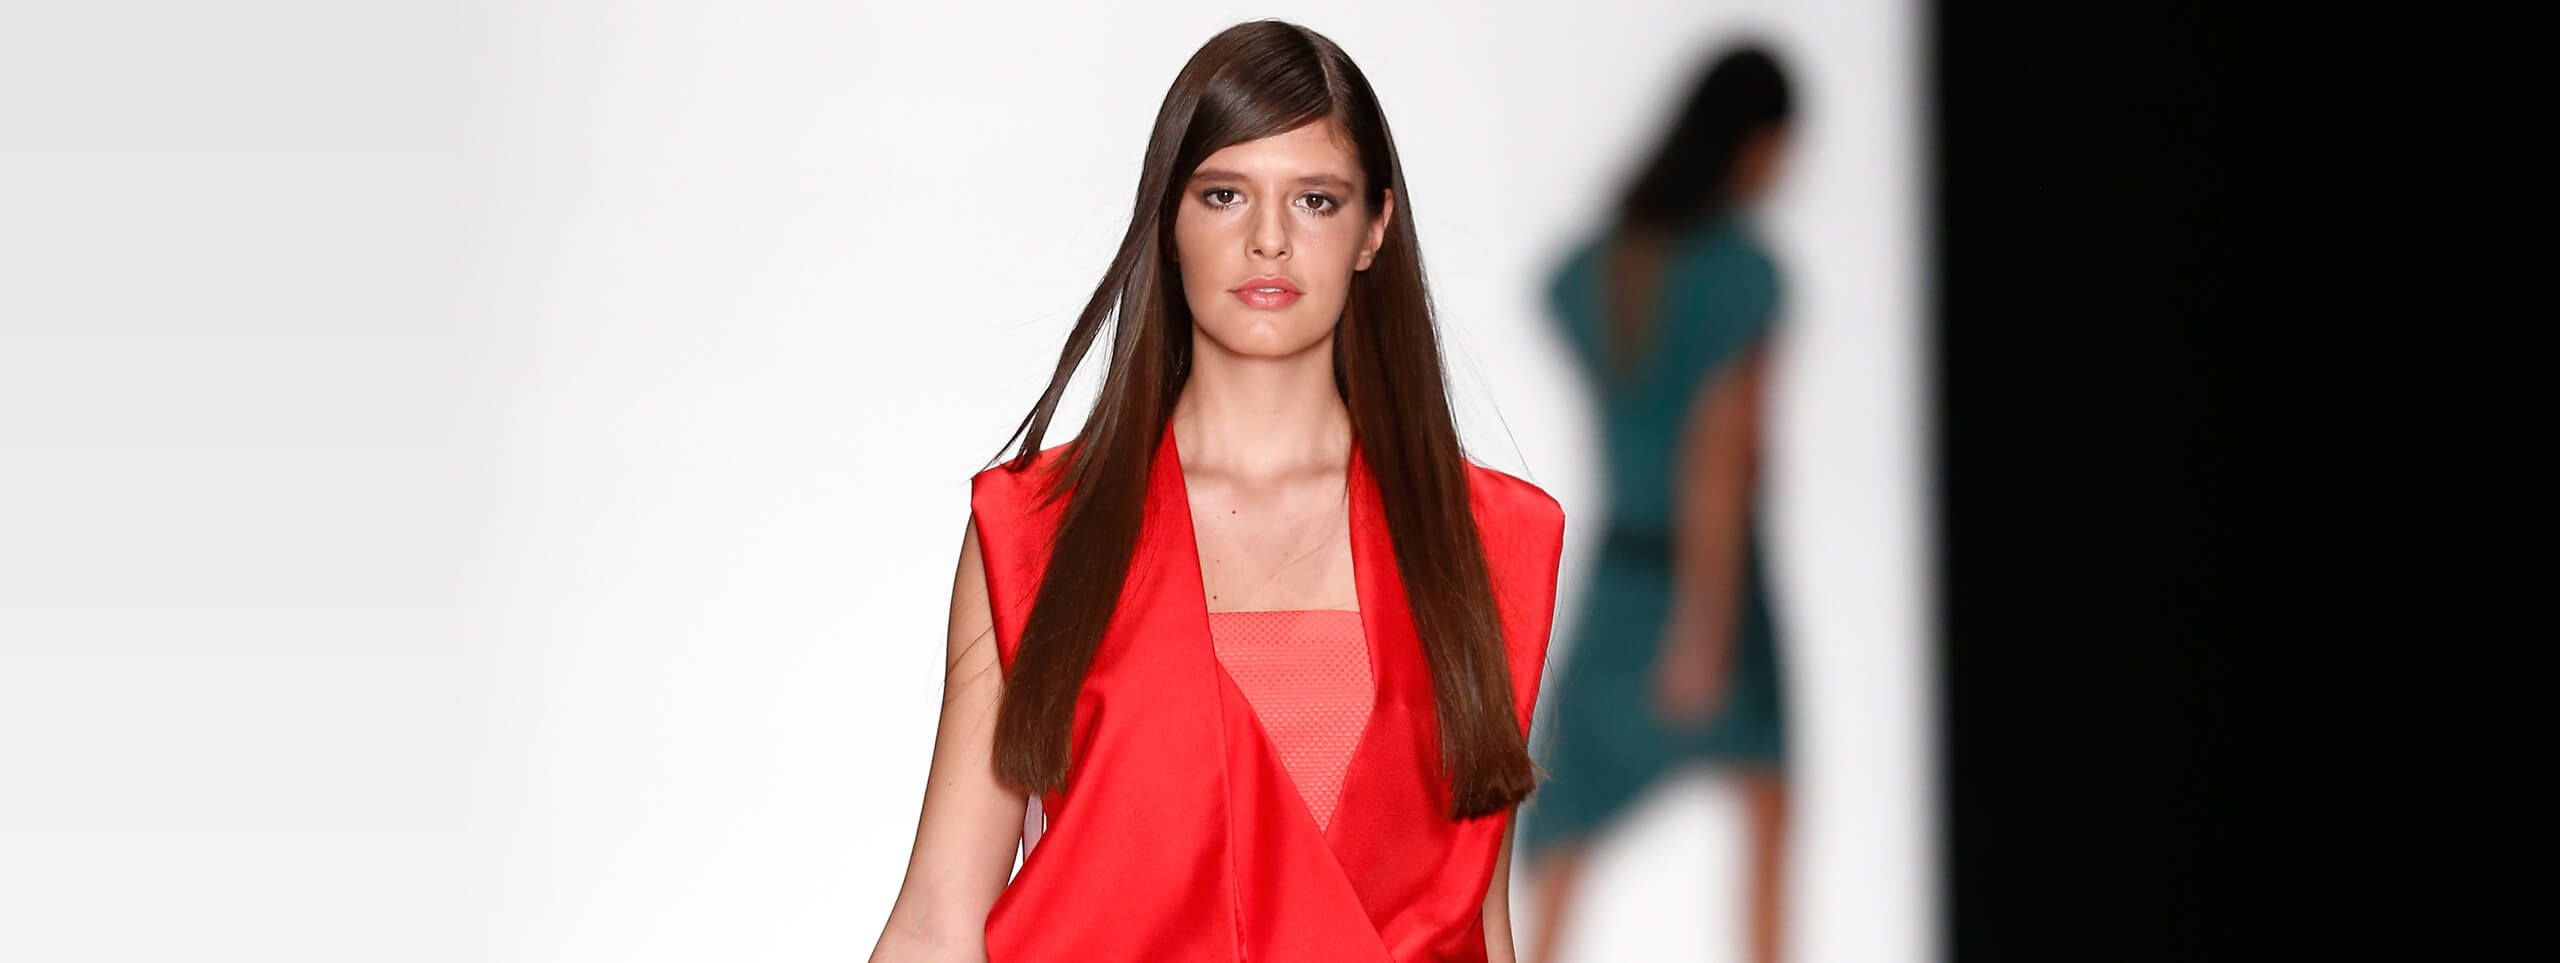 Model with long hairstyle walks down the runway